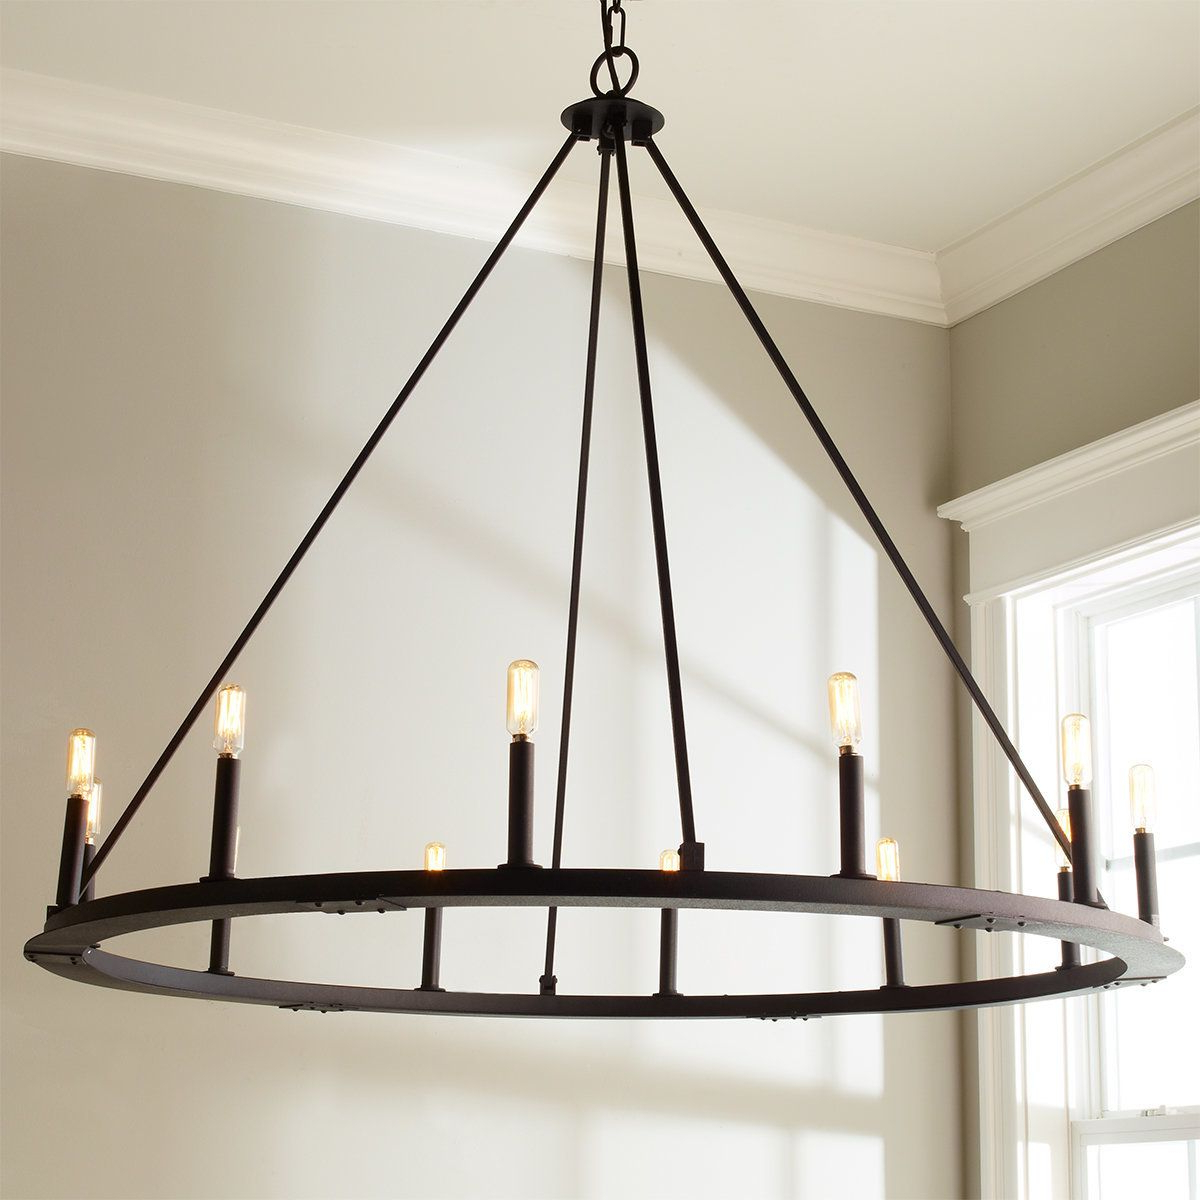 Shayla 12 Light Wagon Wheel Chandeliers Intended For Preferred Check Out Minimalist Iron Ring Chandelier – 12 Light From (View 16 of 25)